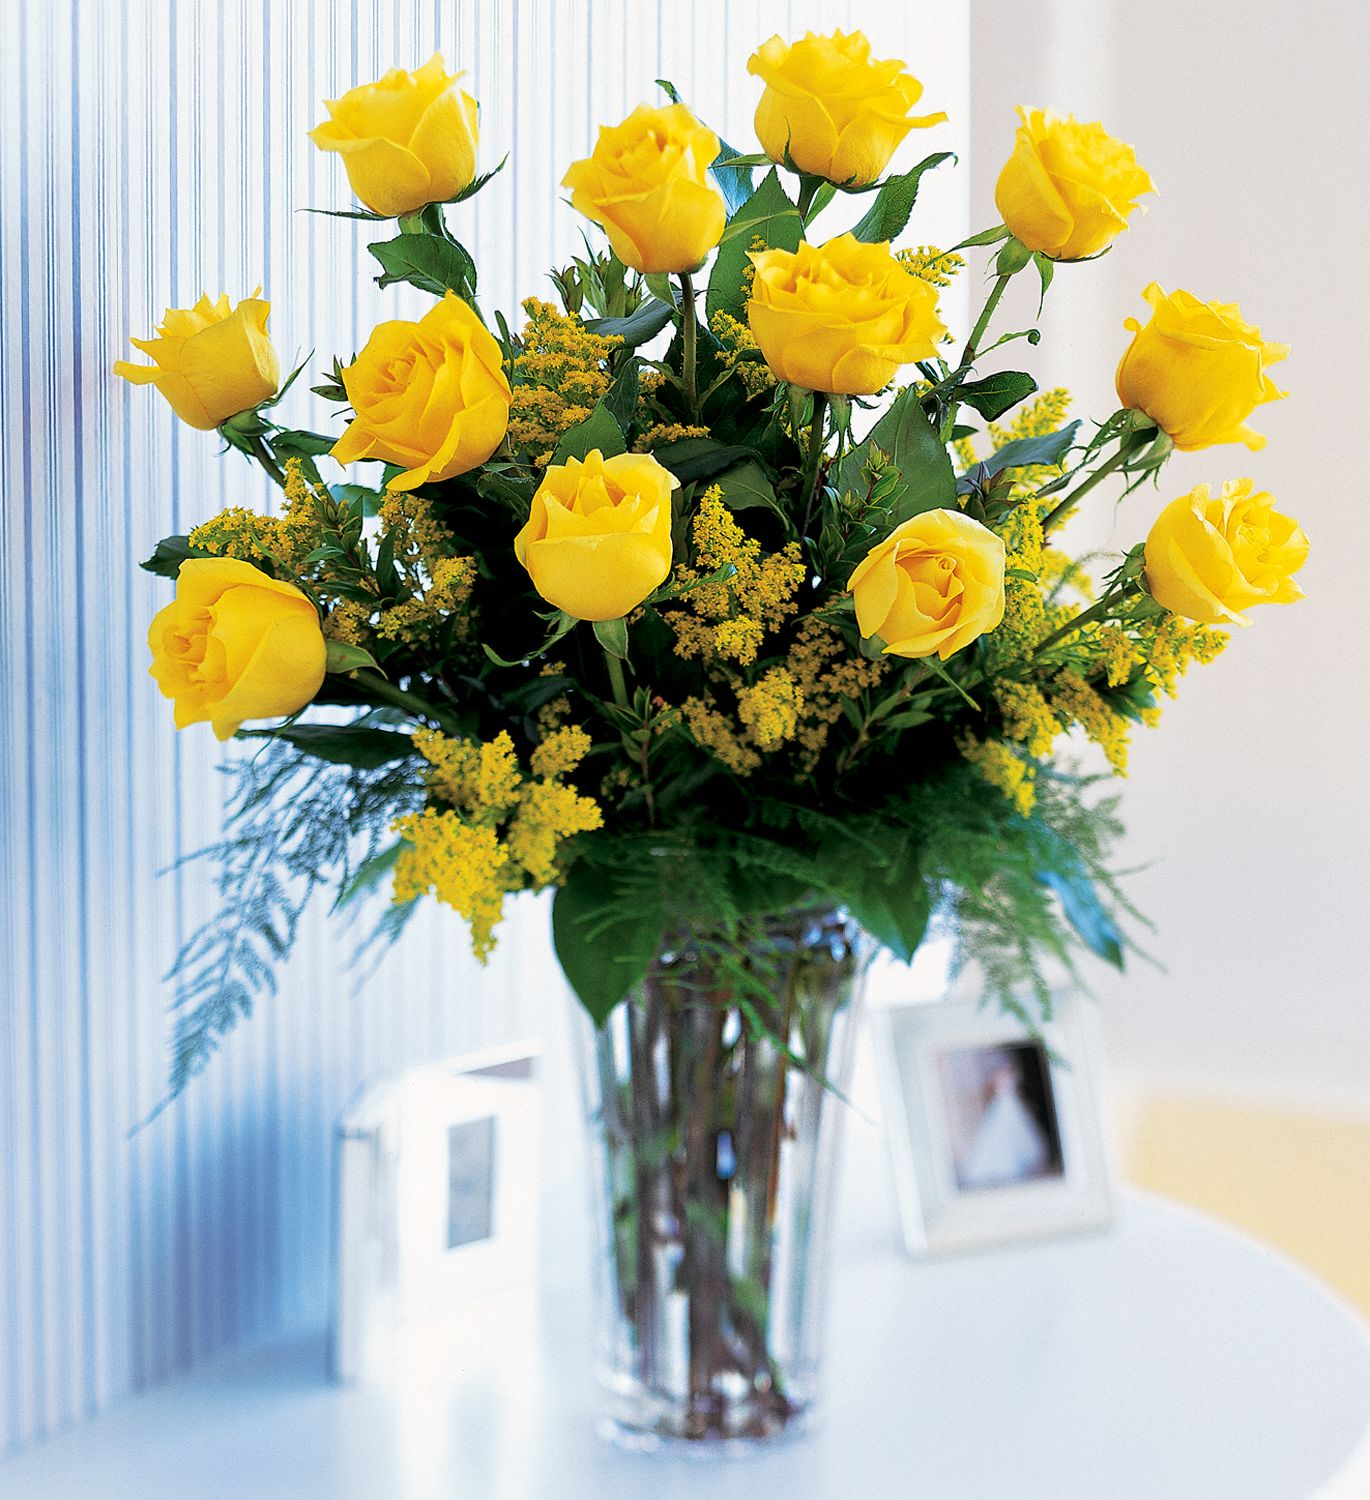 Hunt Valley Florals & Gifts, Hunt Valley, Maryland - A Dozen Yellow Roses, picture